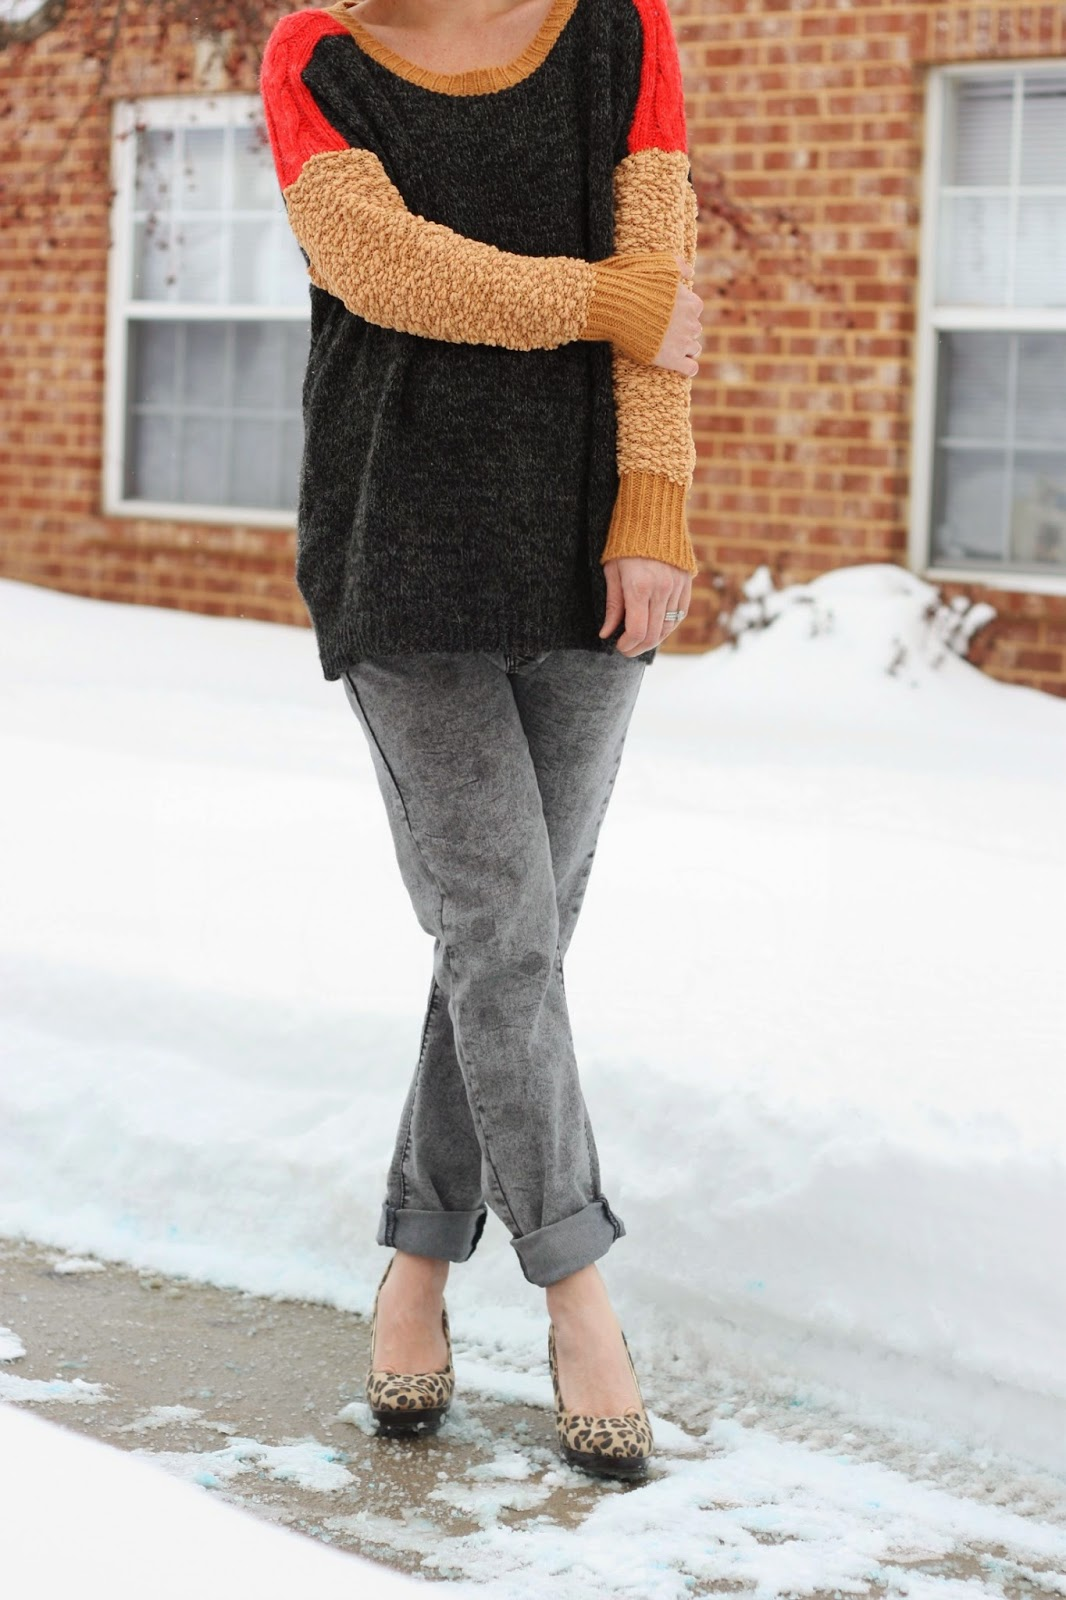 Boyfriend Jeans and BIG Sweaters. - The Pretty Life Girls